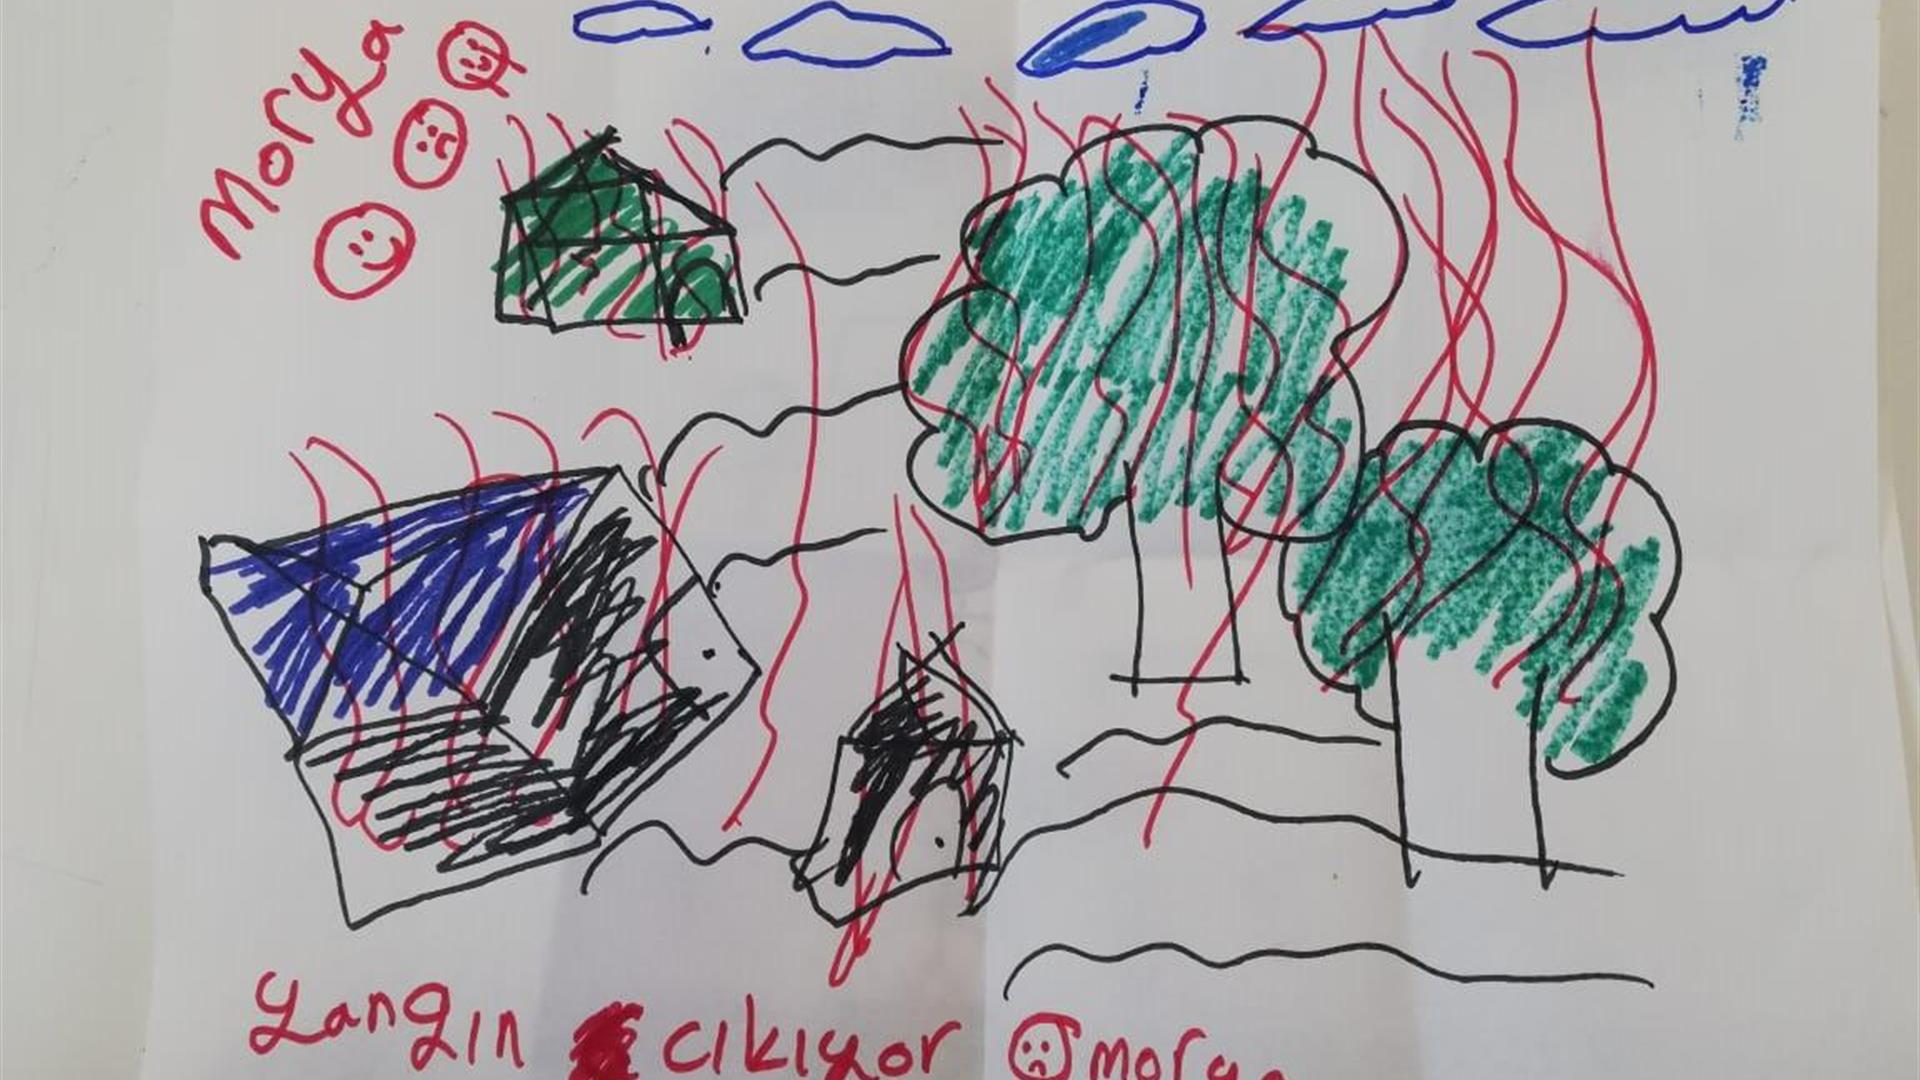 Greece Kara Tepe Child Drawing About Fires 1